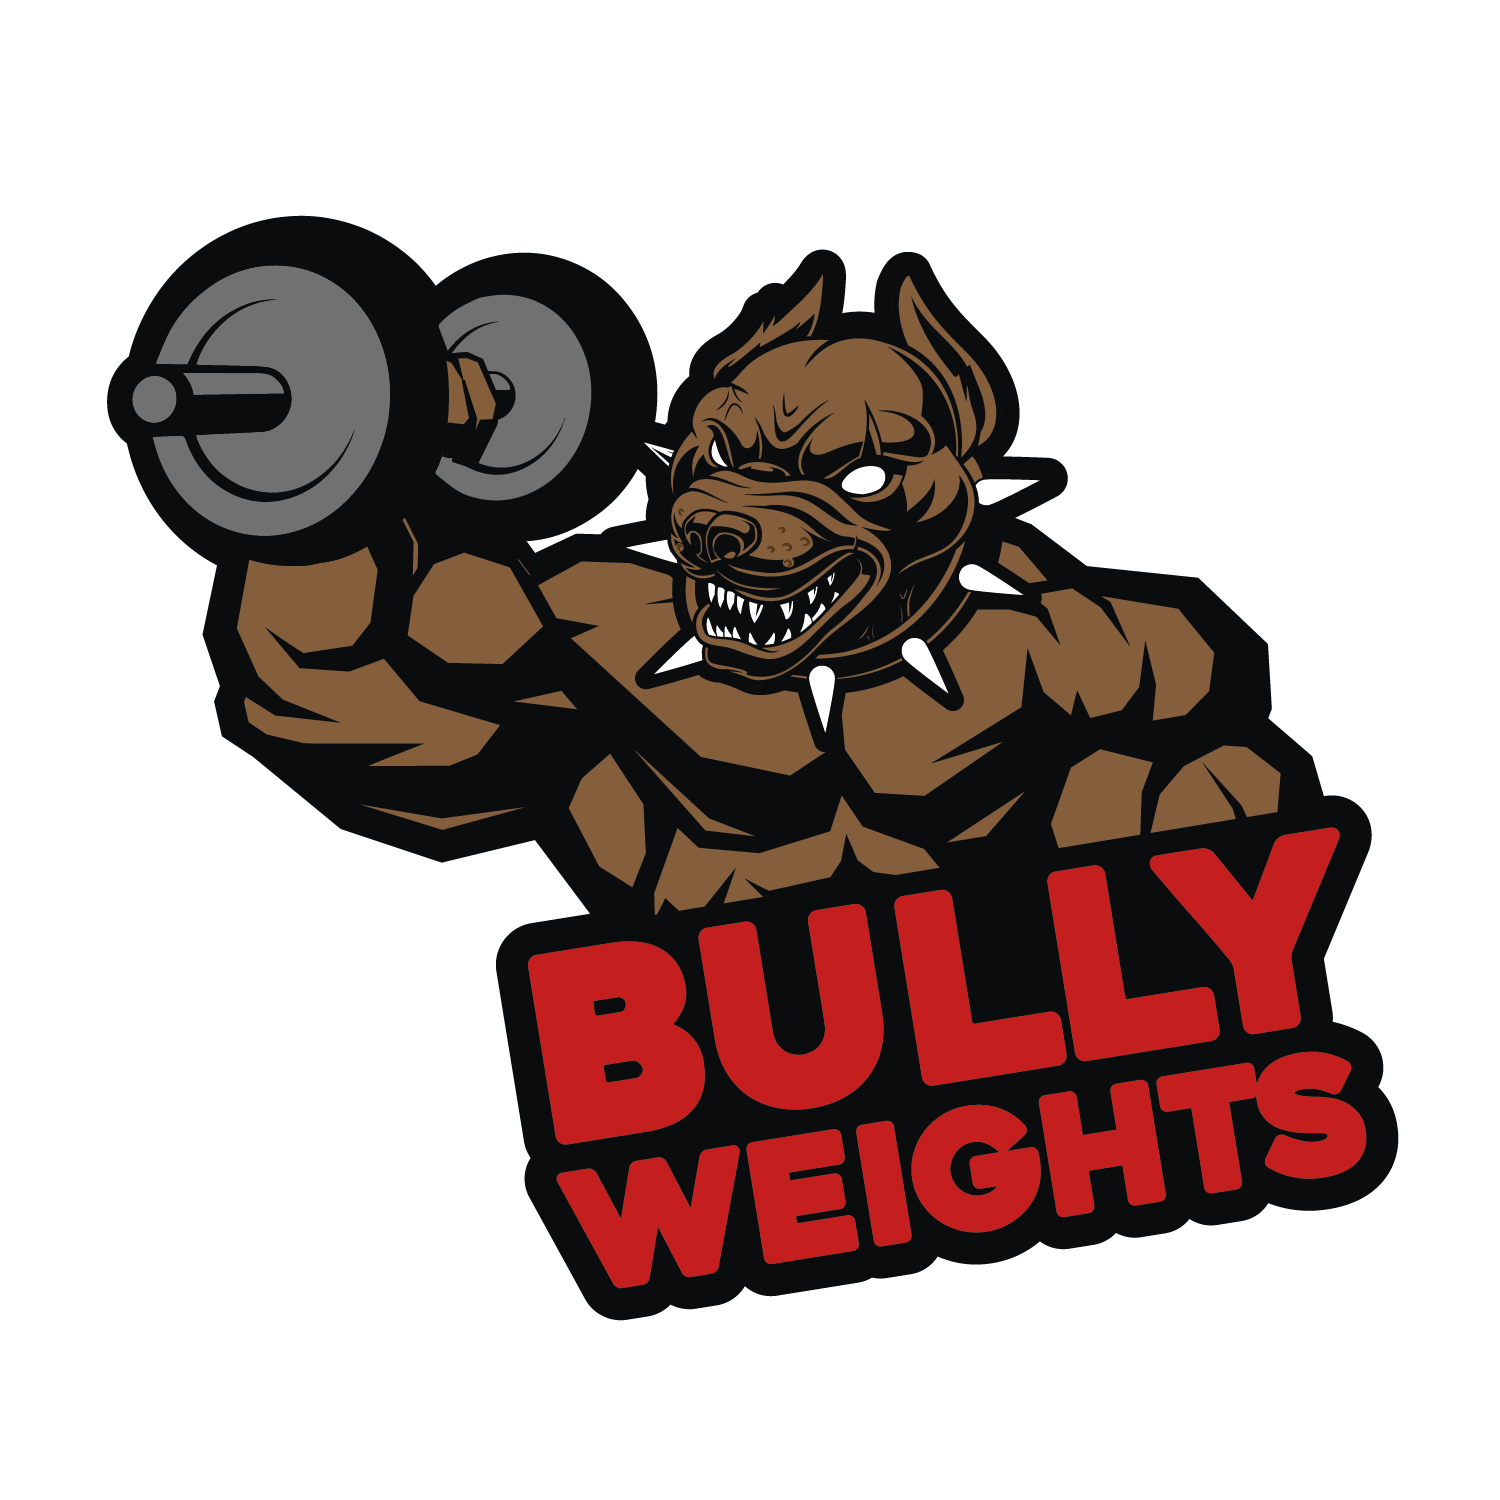 Bully Weights Gym Apparel